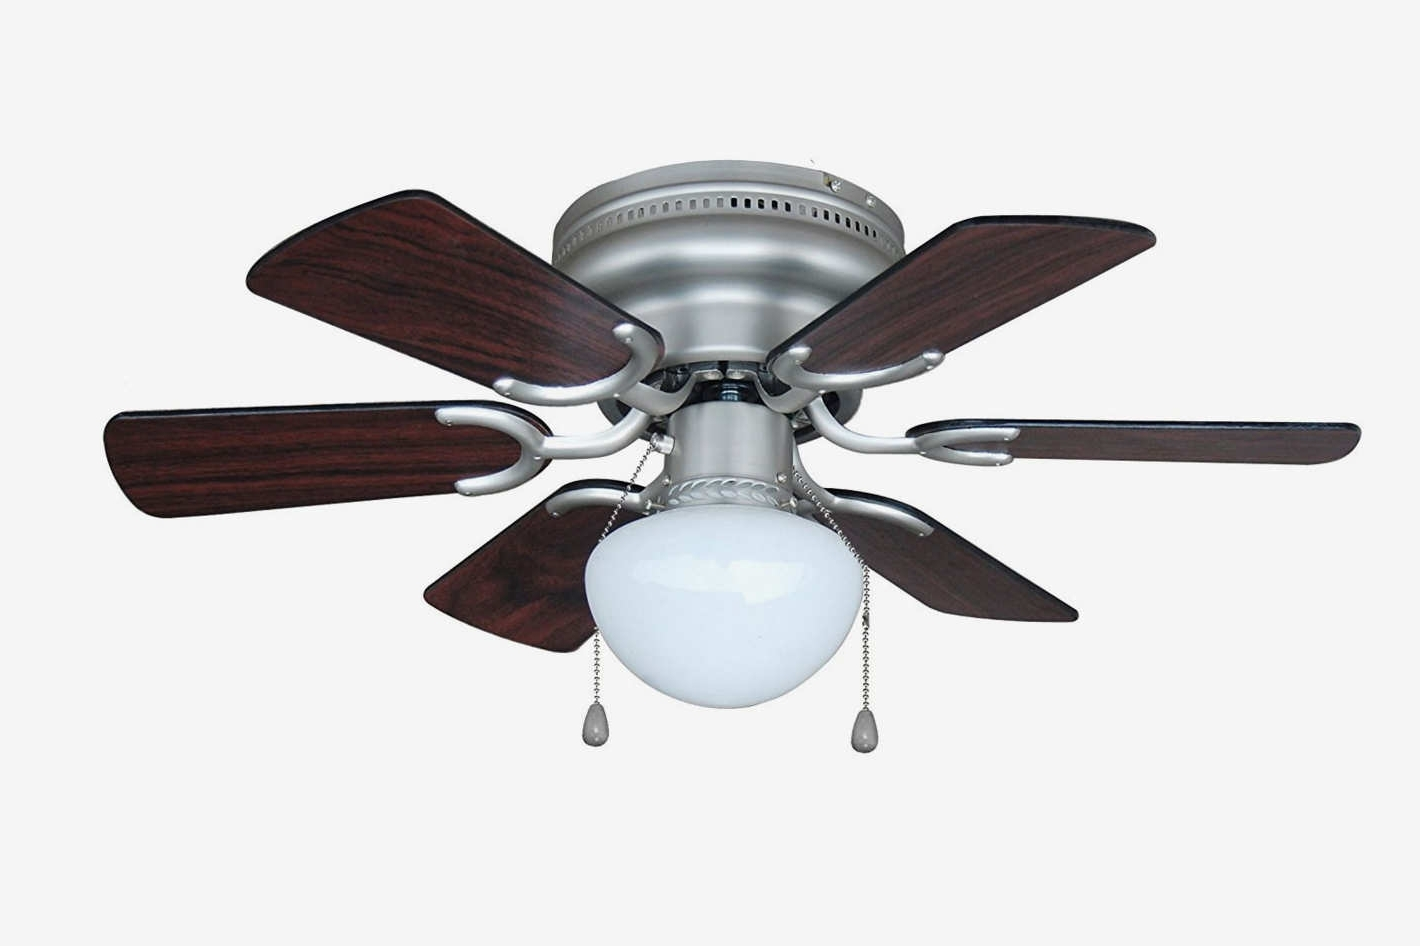 Outdoor Ceiling Fans Under $150 Throughout Favorite The 9 Best Ceiling Fans On Amazon 2018 (Gallery 14 of 20)